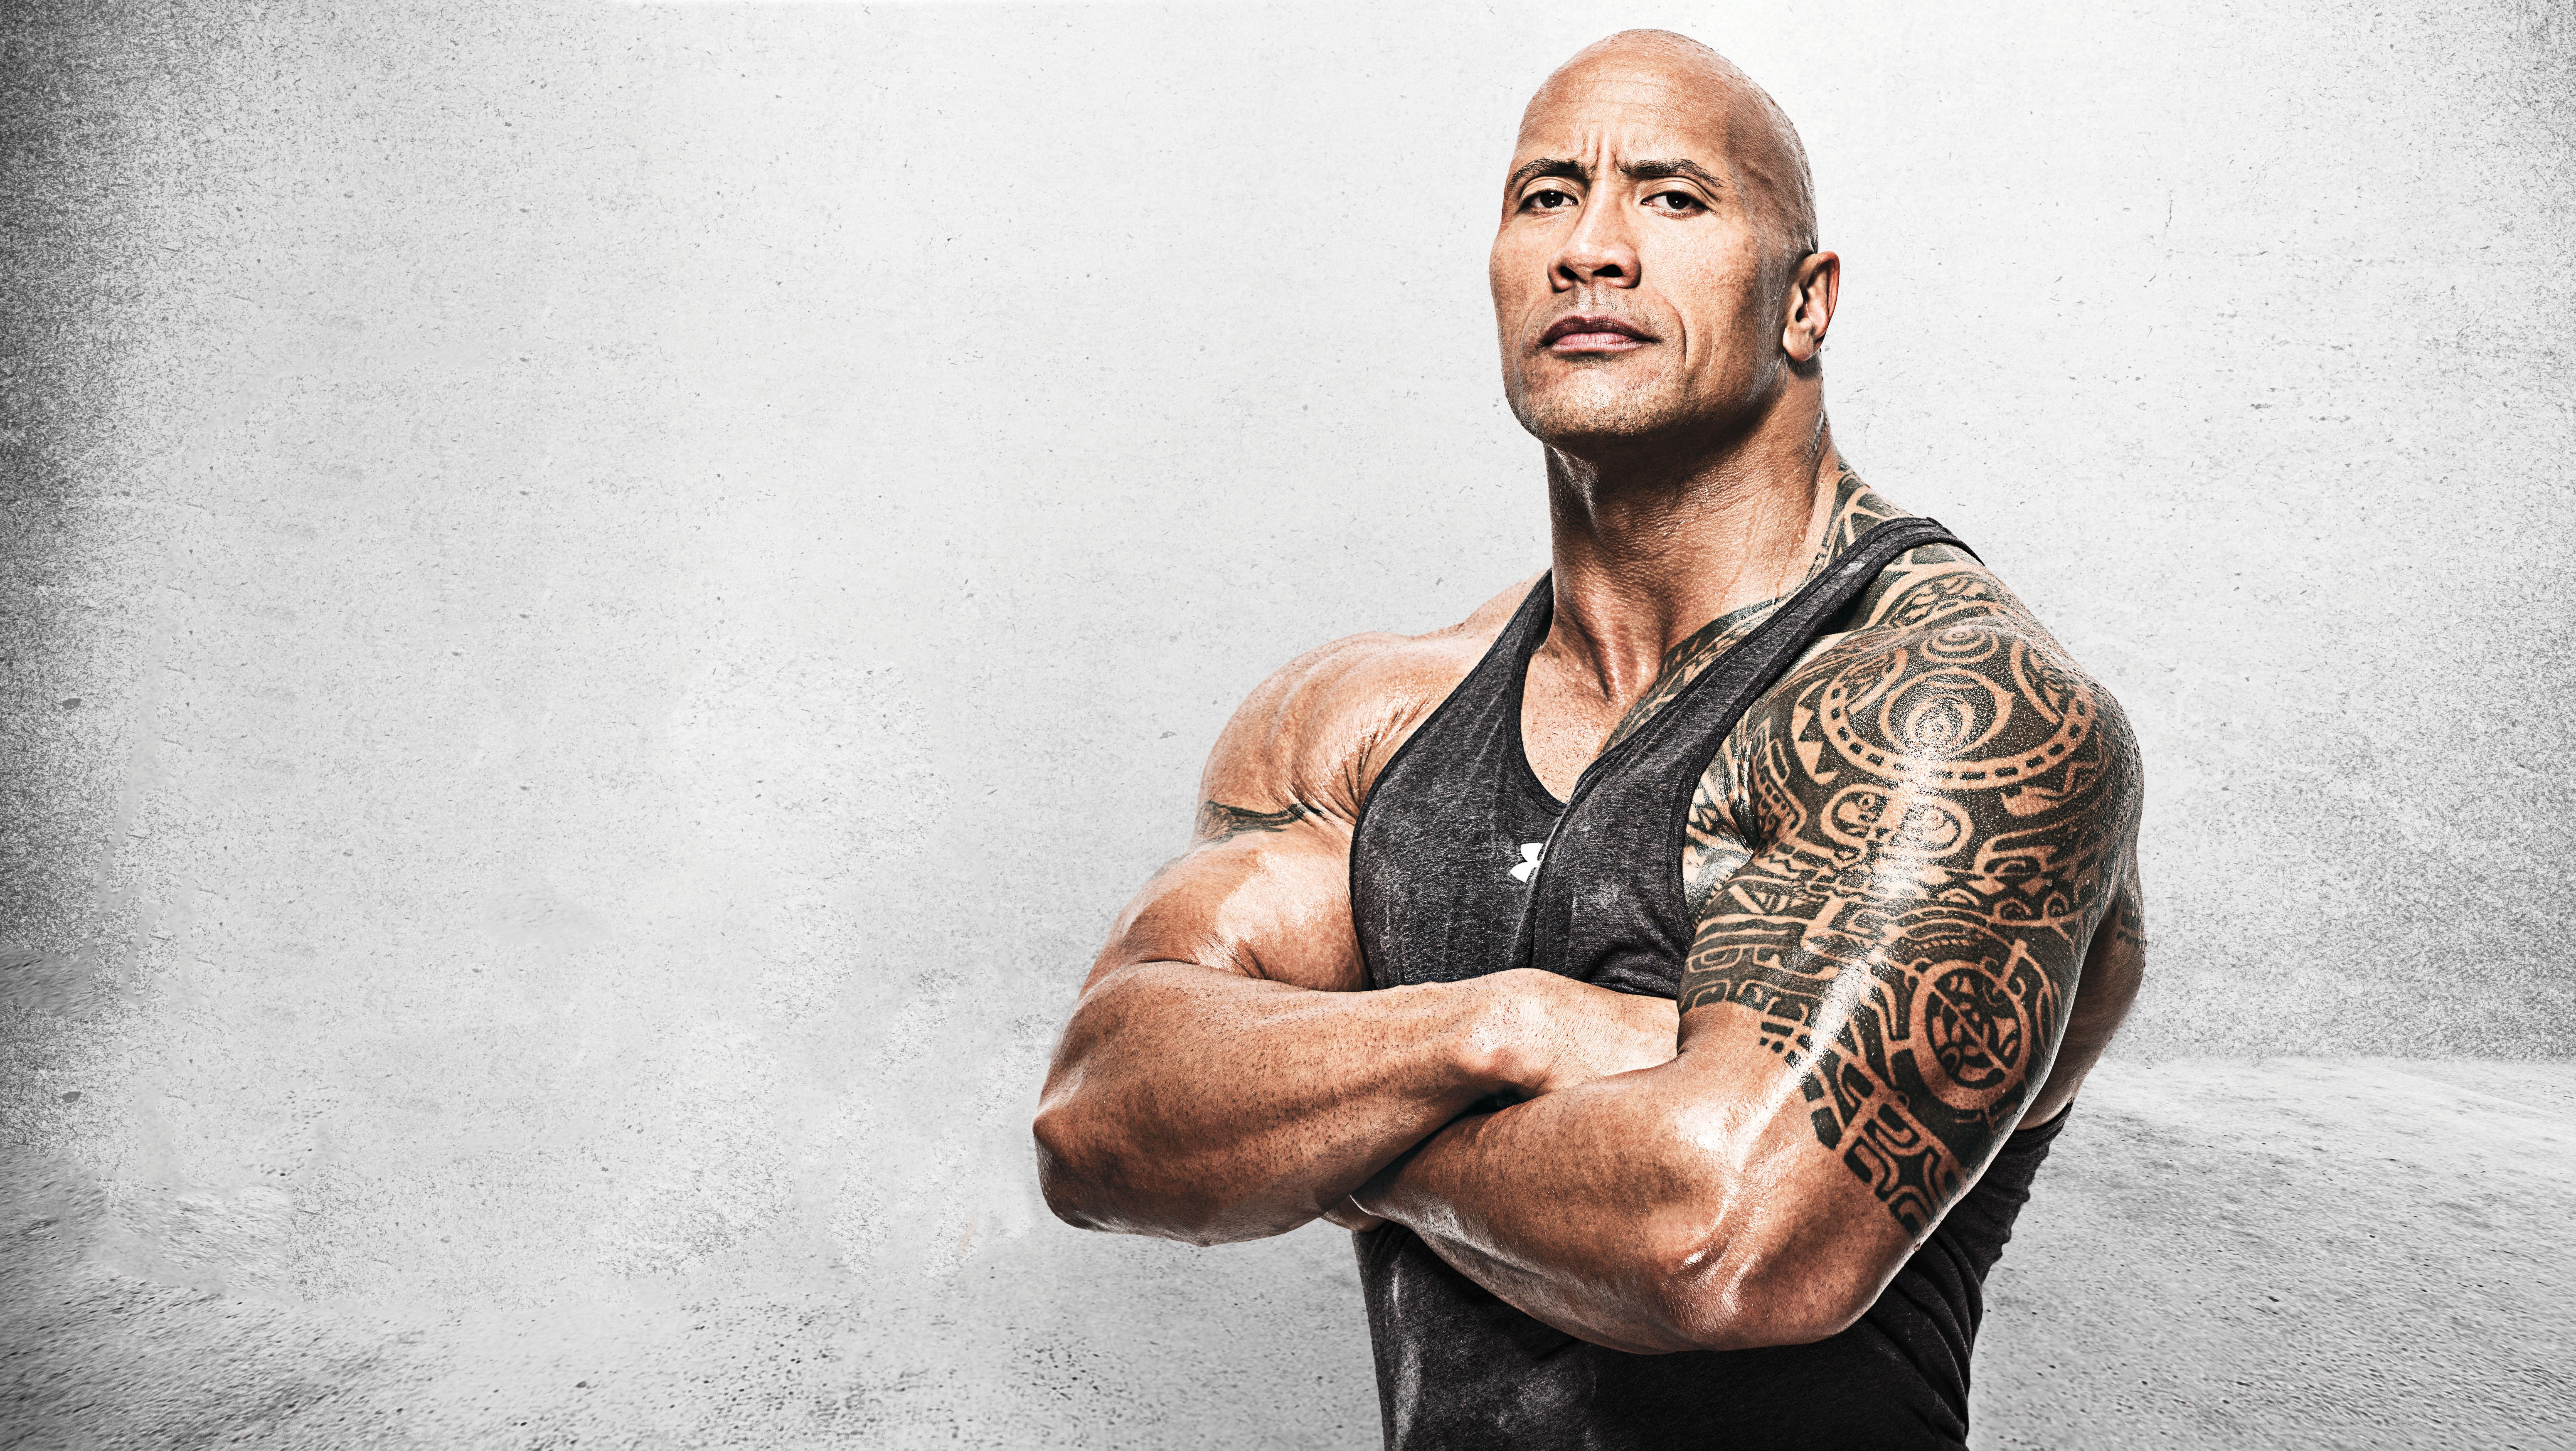 Dwayne Johnson Hollywood Actor 5K Wallpapers HD Wallpapers 6198x3491